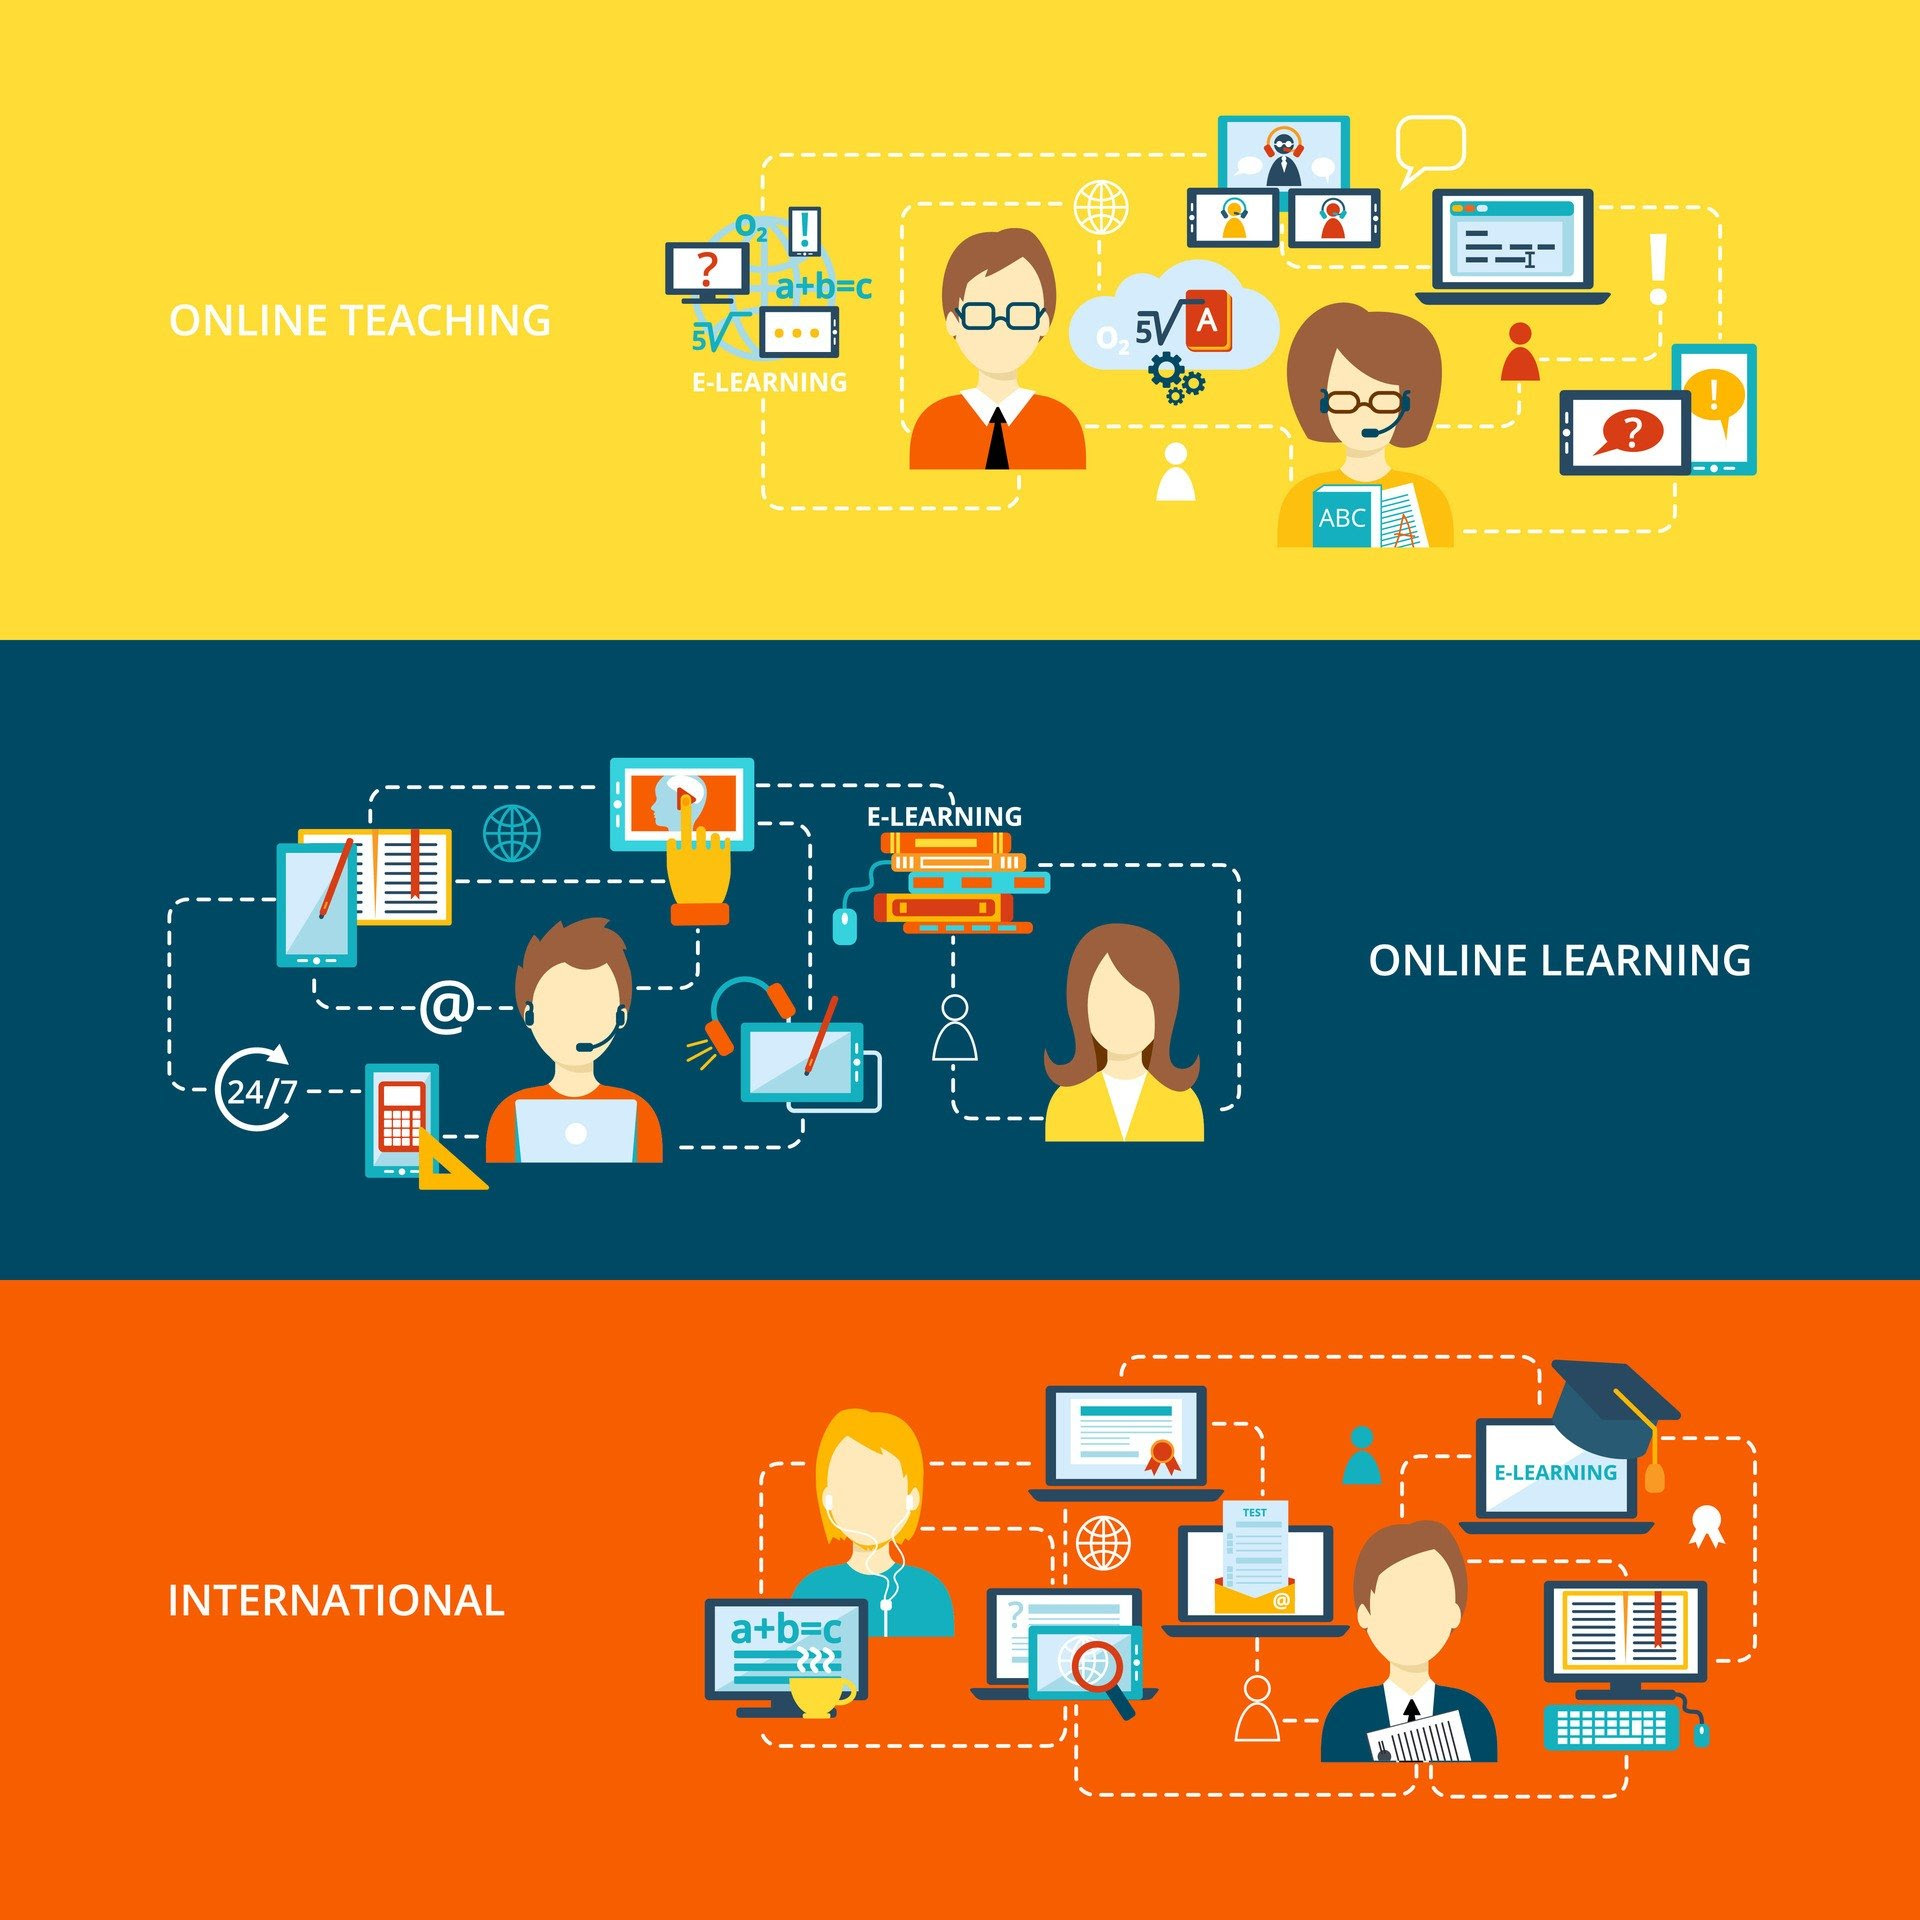 Online Learning And Teaching: Teachers Are Critical To ...